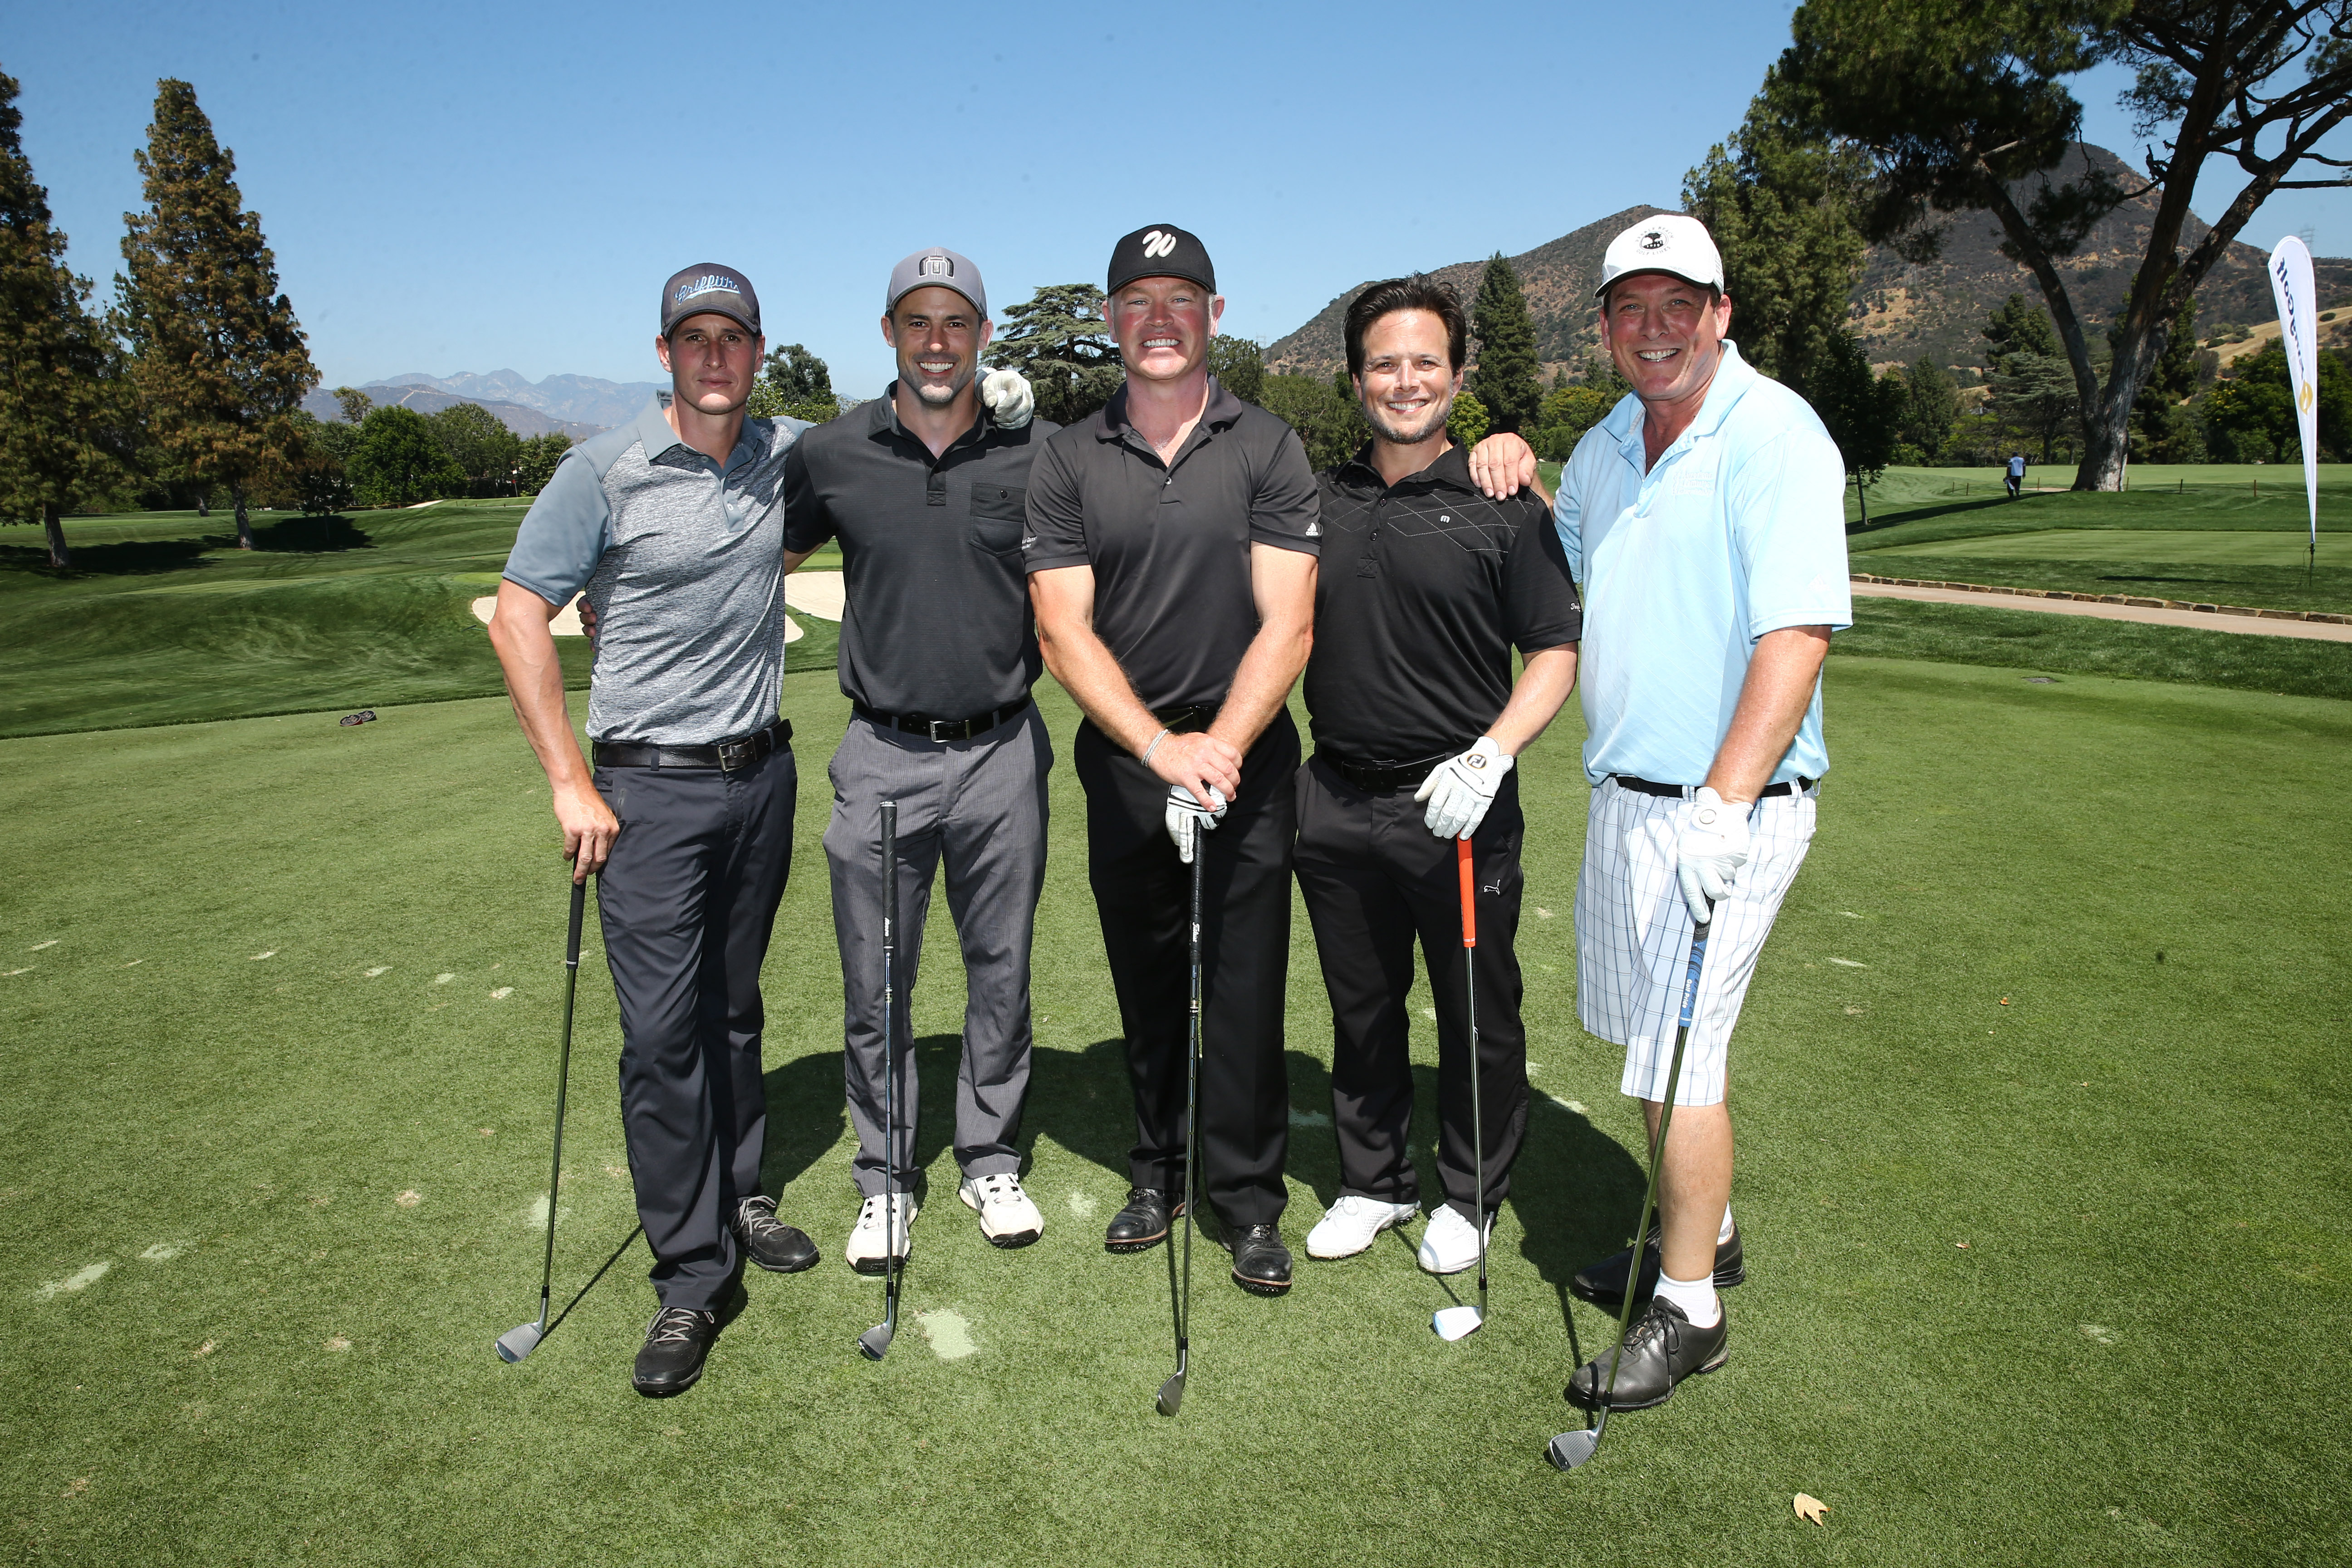 Brenden Fehr, Philip Boyd, Neal McDonough, Scott Wolf and Anthony Snow play at the Screen Actors Guild Foundation's 6th Annual Los Angeles Golf Classic on June 8, 2015 in Burbank, California. (Photo by Mark Davis/Getty Images for The Screen Actors Guild Foundation)